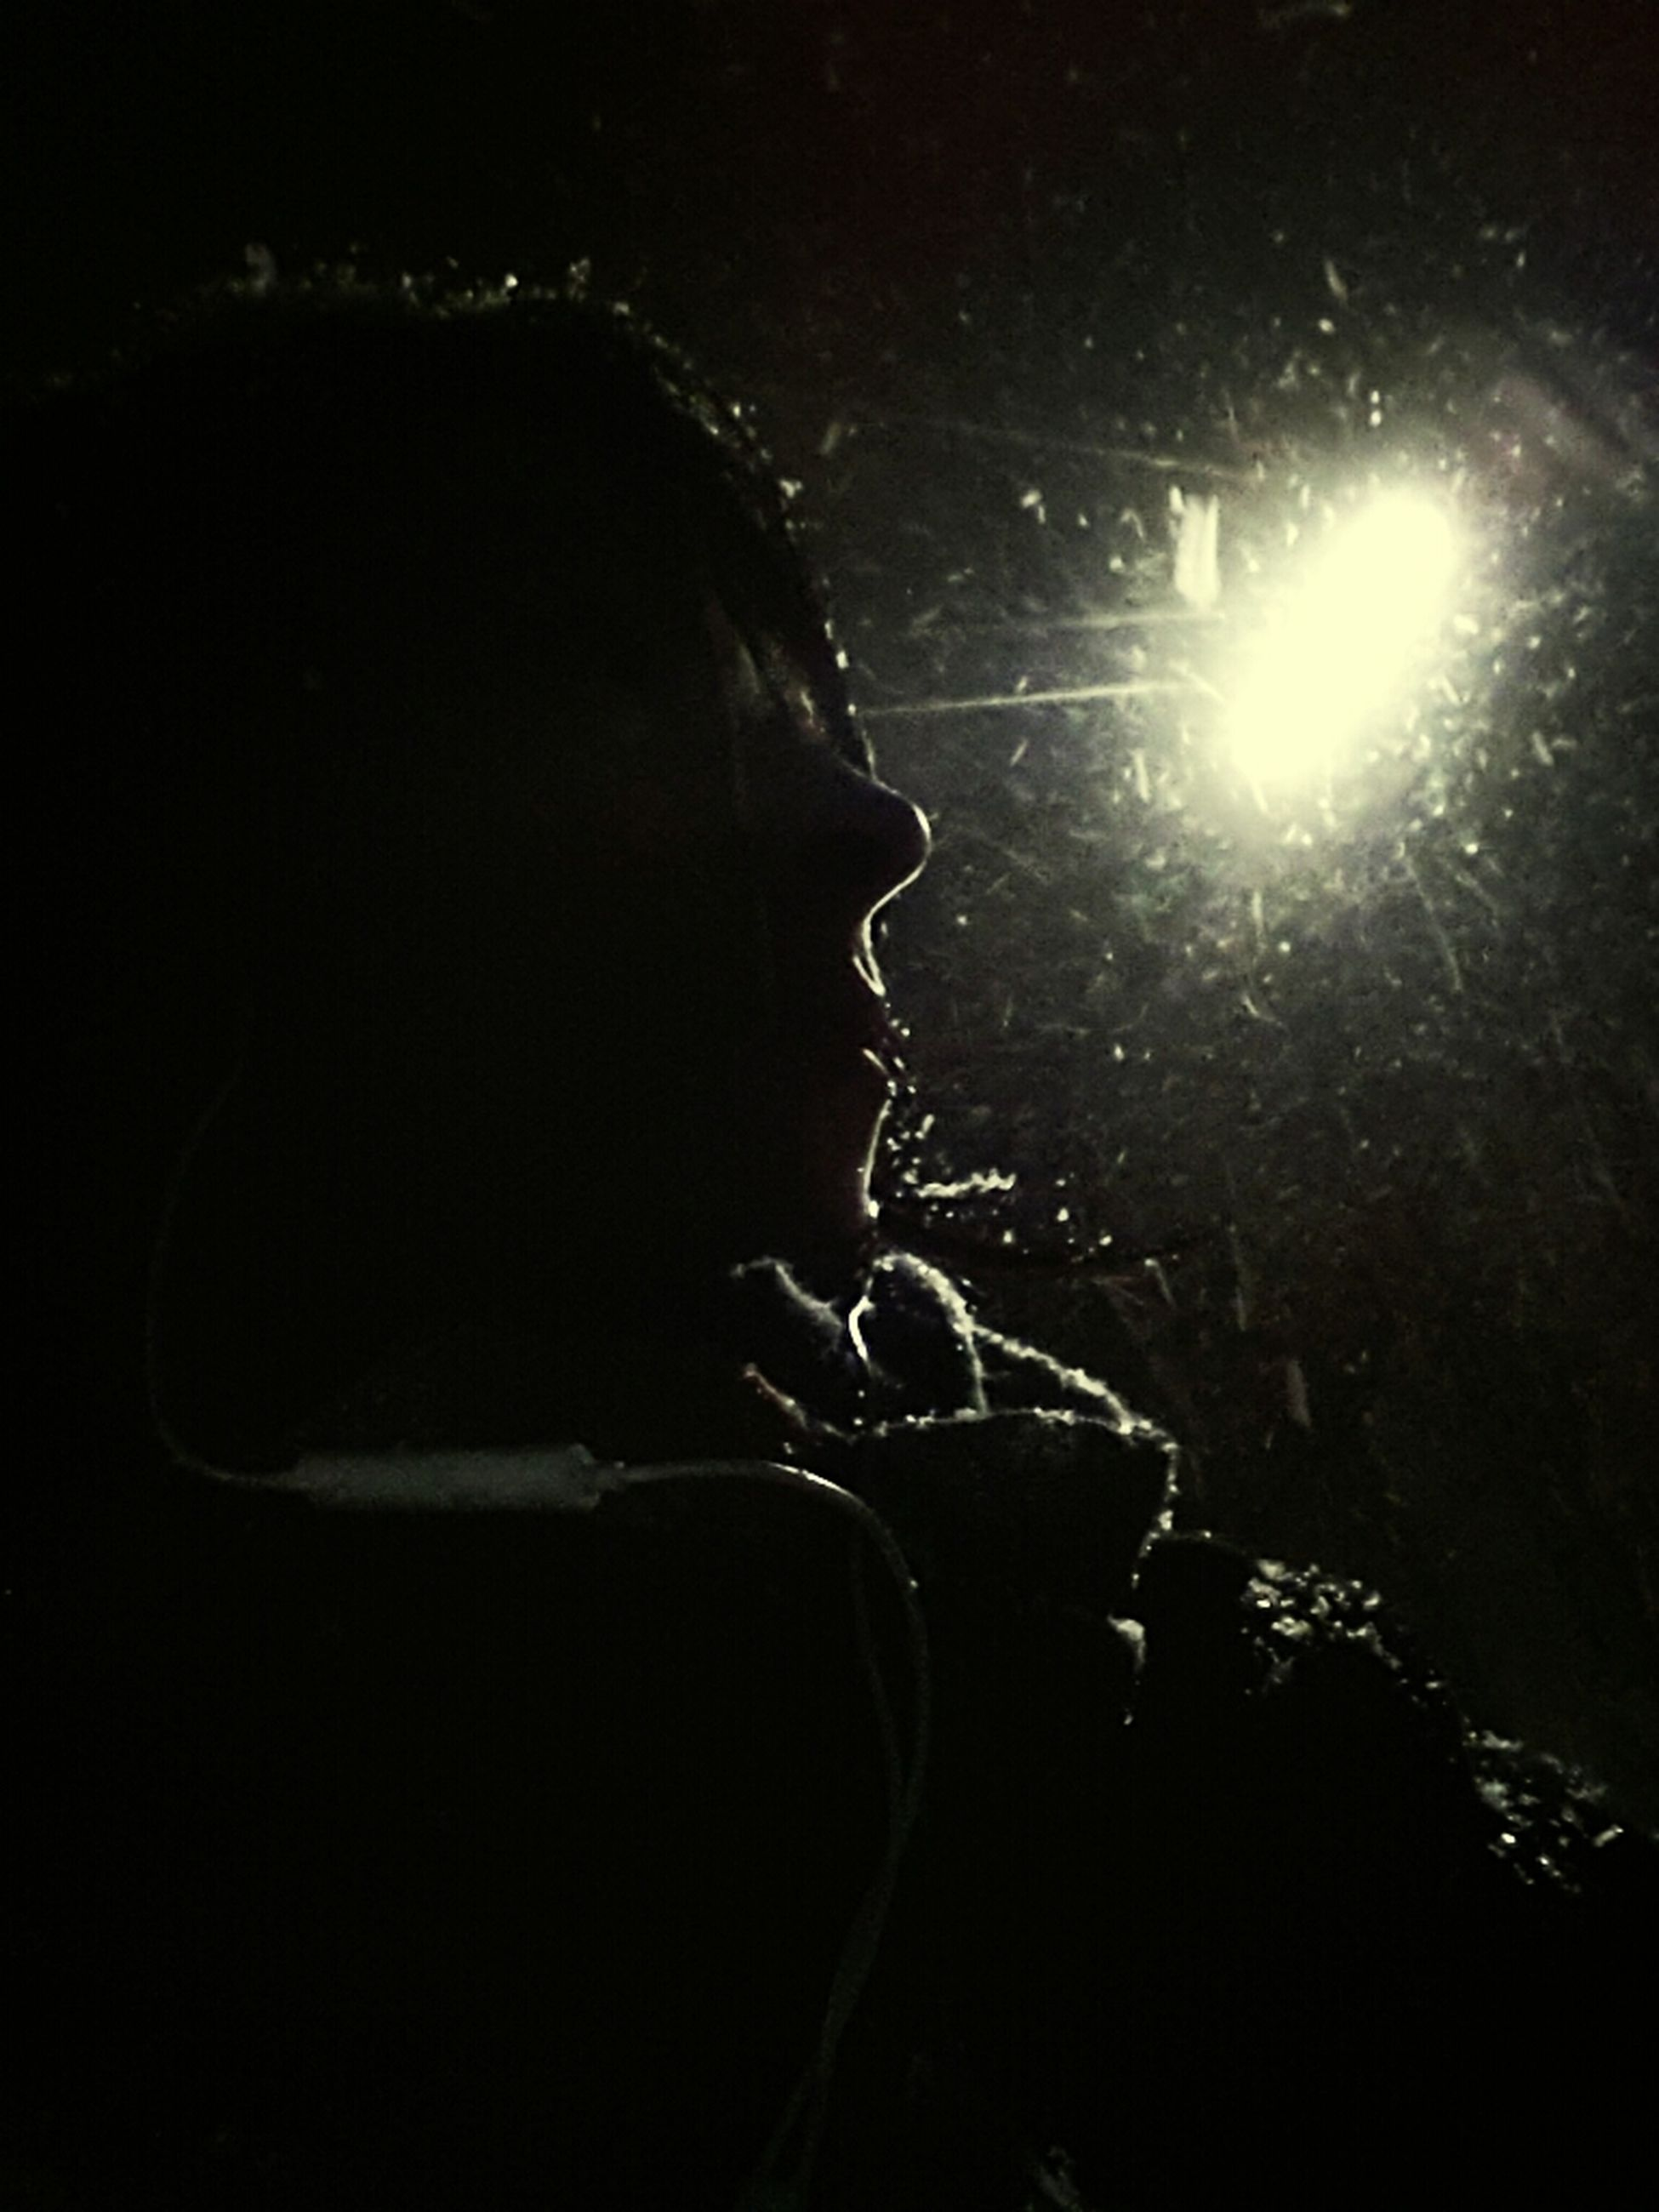 lifestyles, leisure activity, night, men, close-up, headshot, holding, dark, person, light - natural phenomenon, lens flare, unrecognizable person, sunlight, black background, side view, young adult